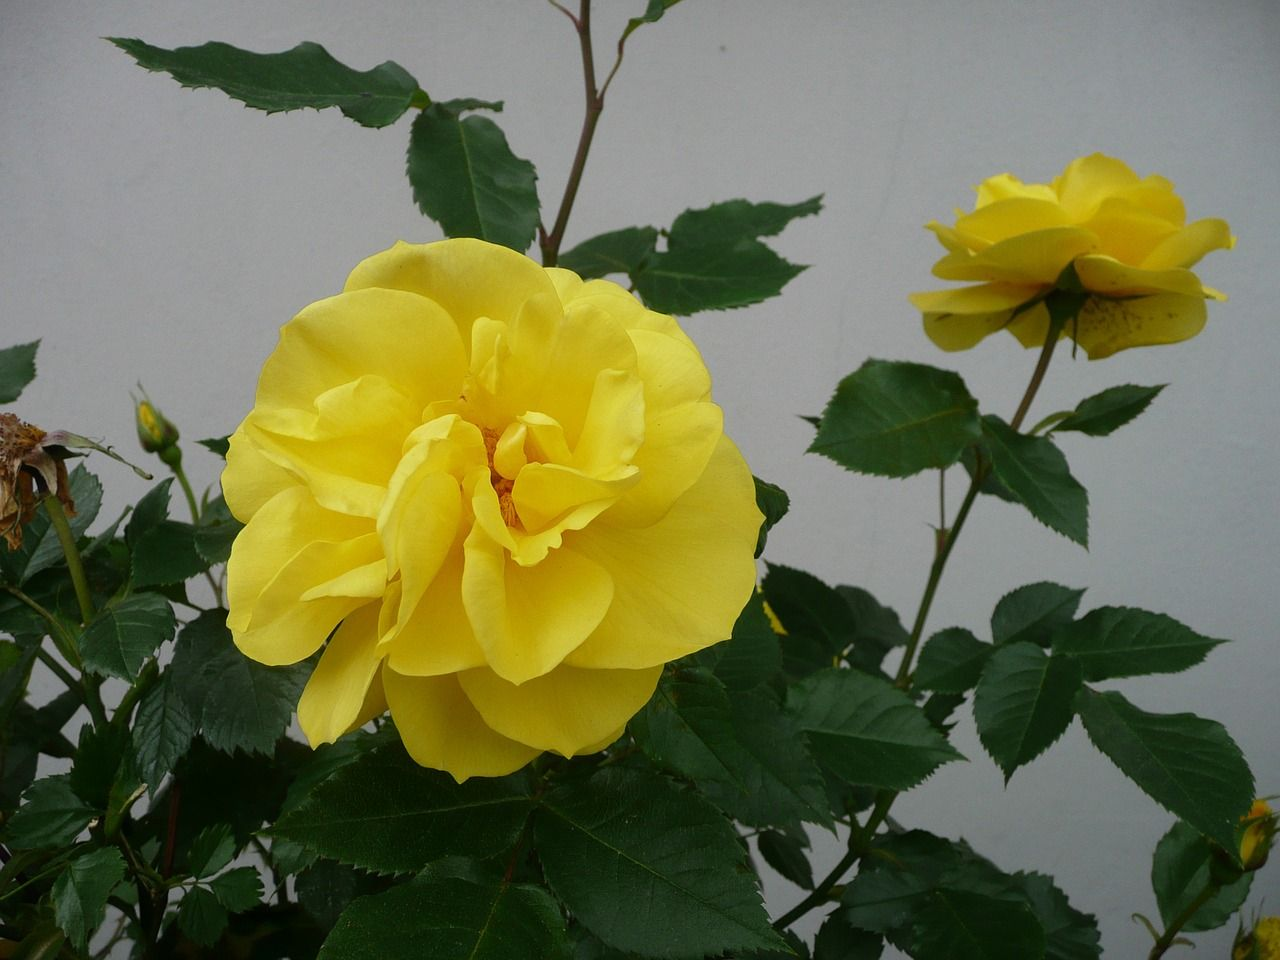 Park Yellow Rose Flower Flowers Park Yellowrose Flower Flowers Yellow Roses Rose Flowers